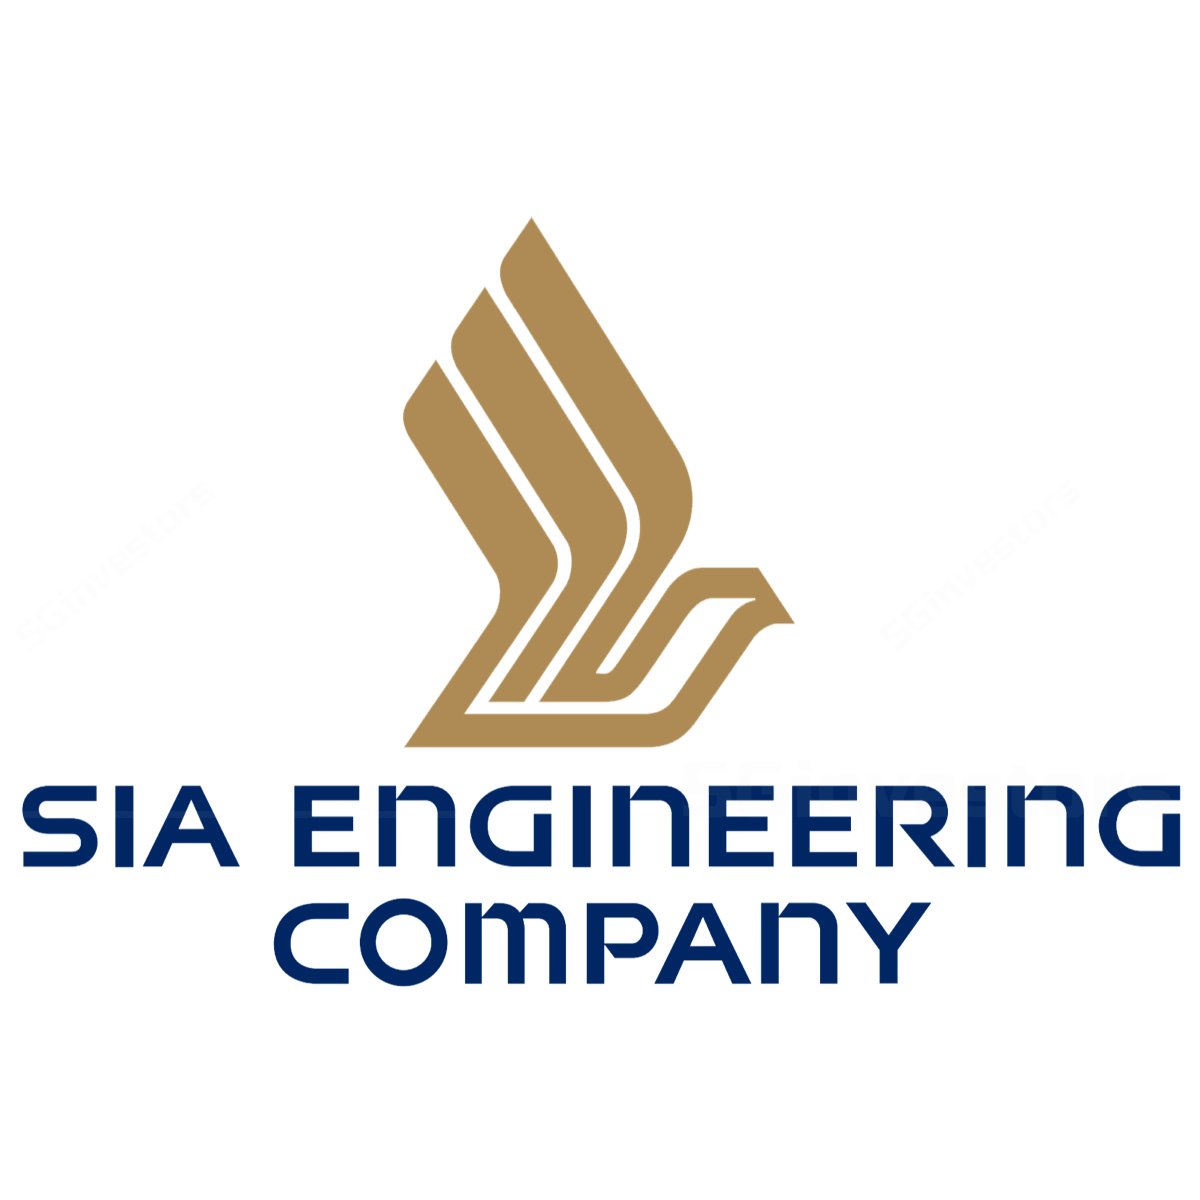 SIA Engineering (SIE SP) - UOB Kay Hian 2018-01-30: Improving Engine MRO To Be Earnings And Re-rating Catalyst. Upgrade To BUY.